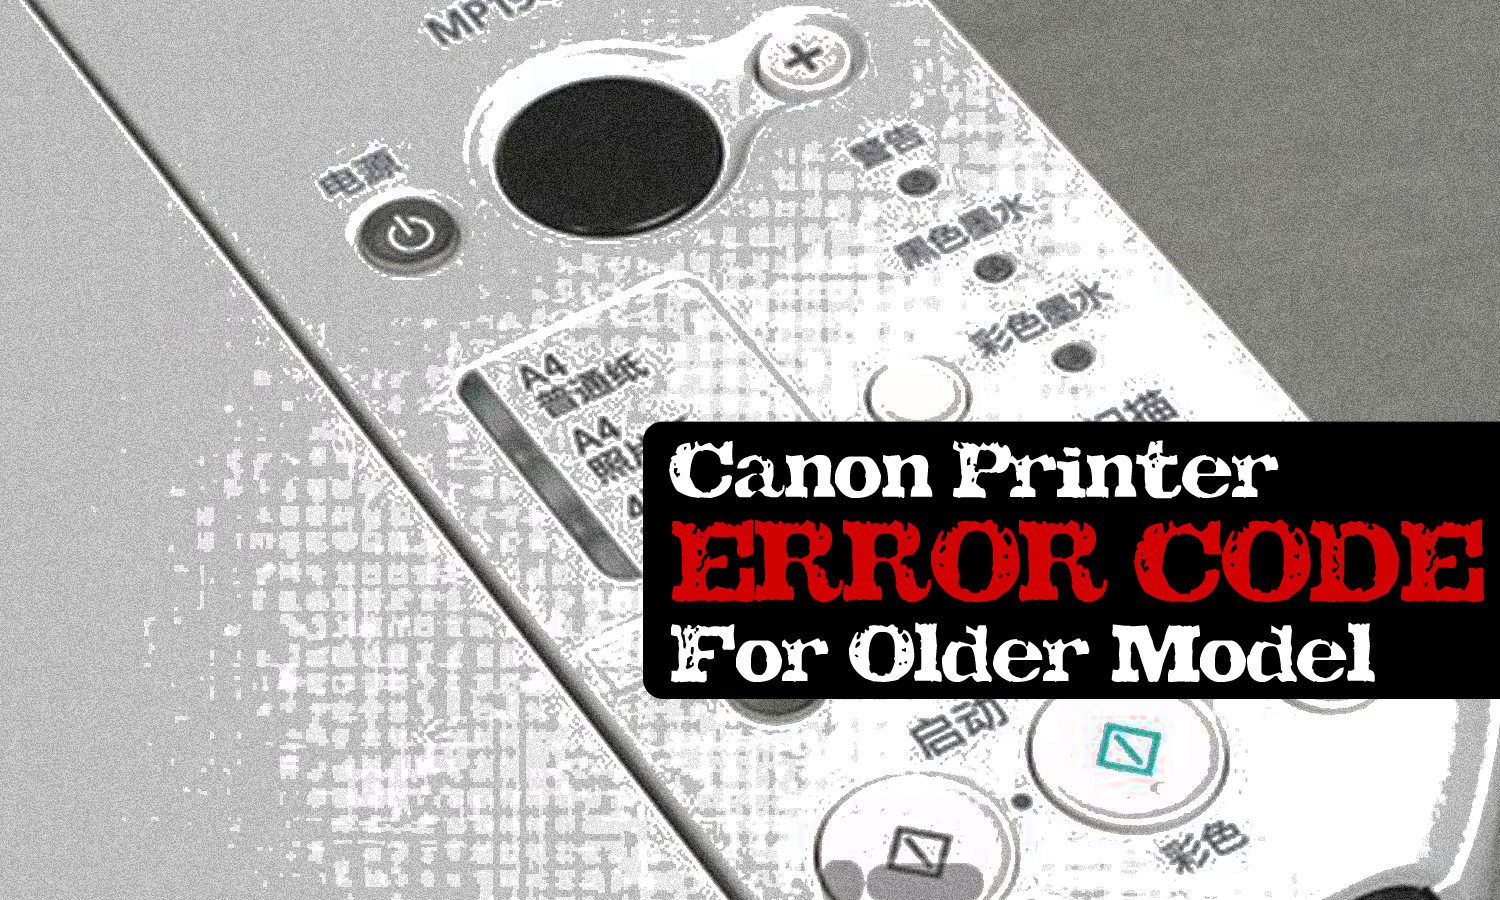 This is for Old Canon Printer Error Code (MP198, MP145, MP160, Etc)